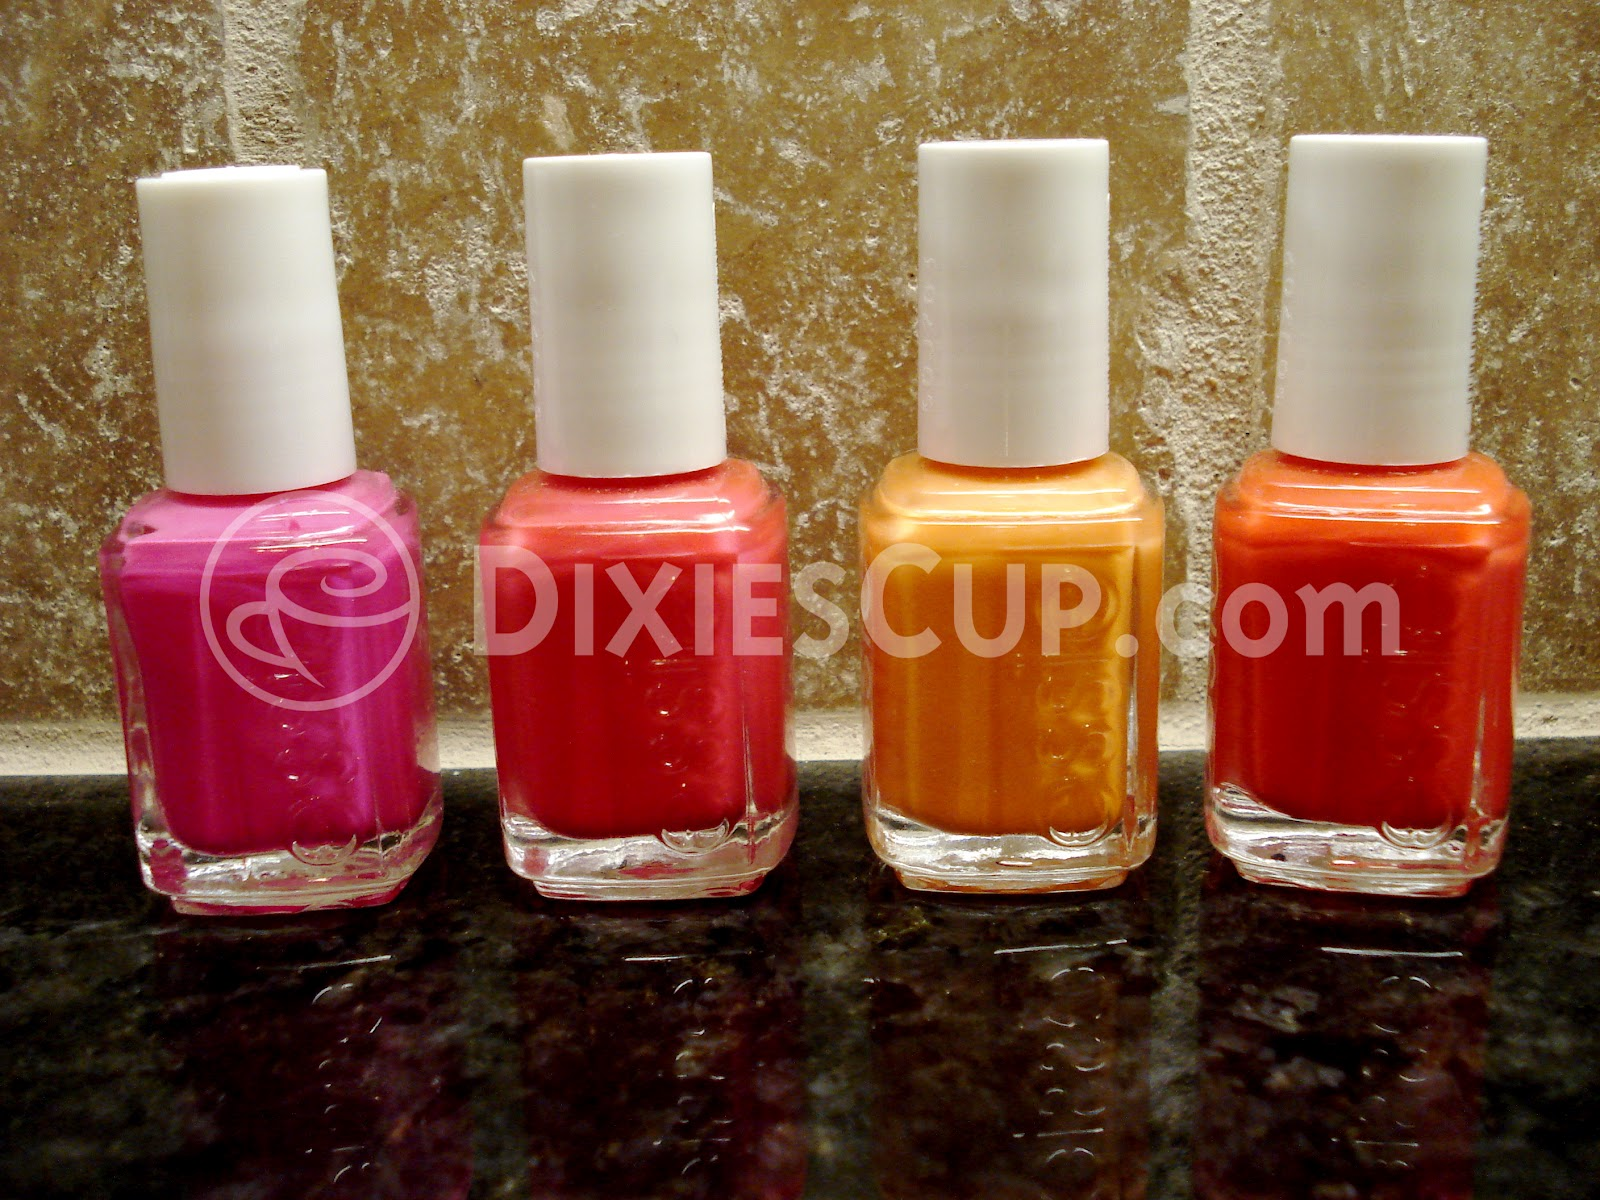 Dixie\'s Cup: Essie Nail Polish Giveaway!